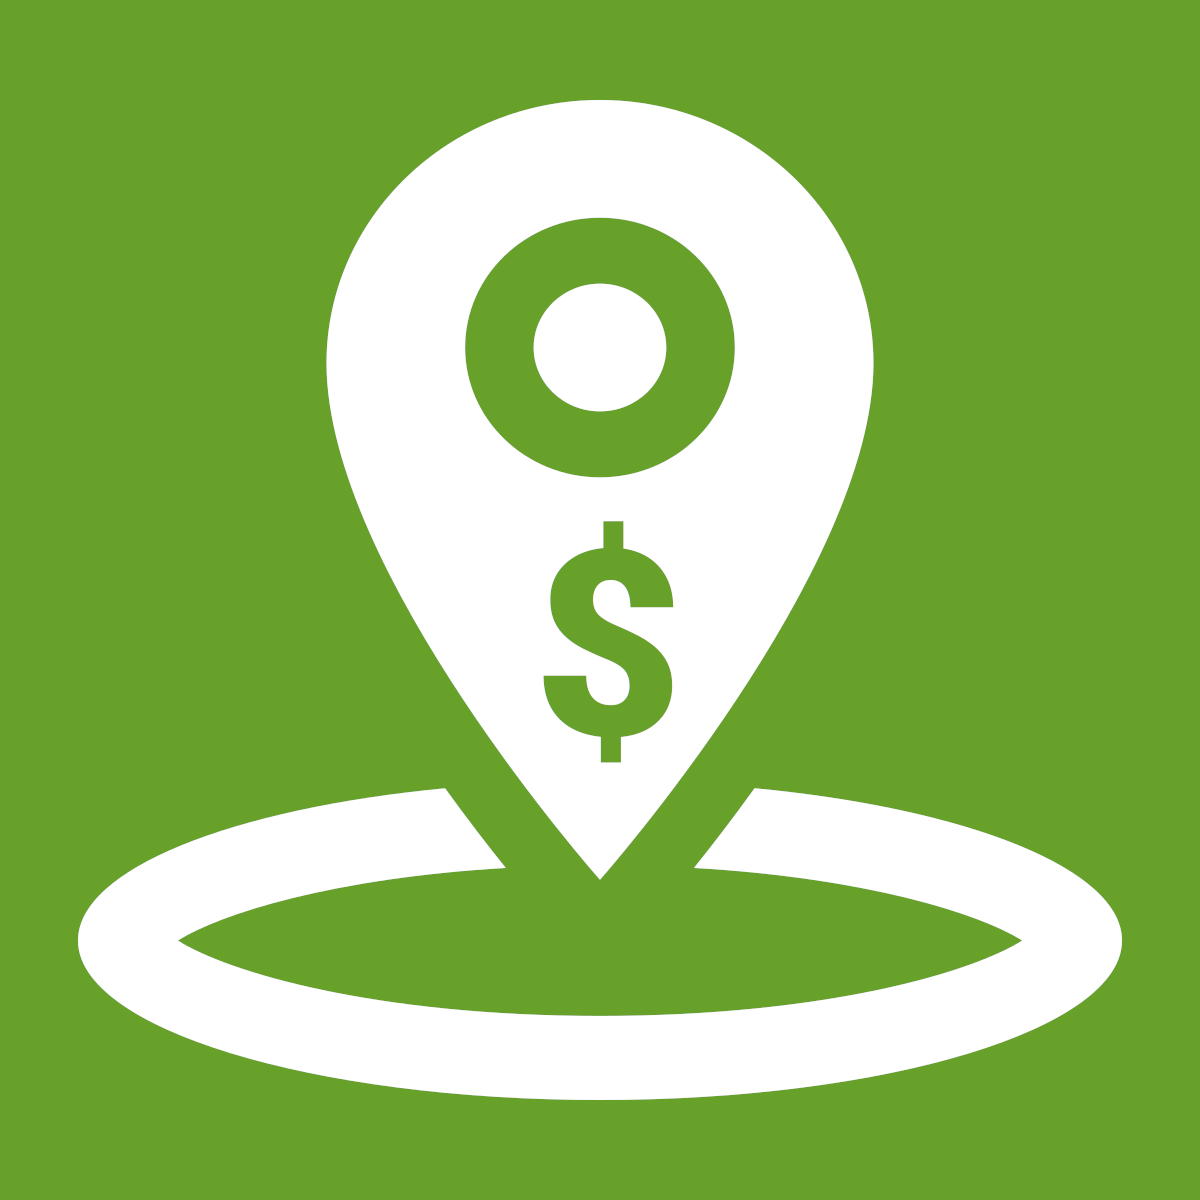 Hire Shopify Experts to integrate Advanced Store Localization app into a Shopify store